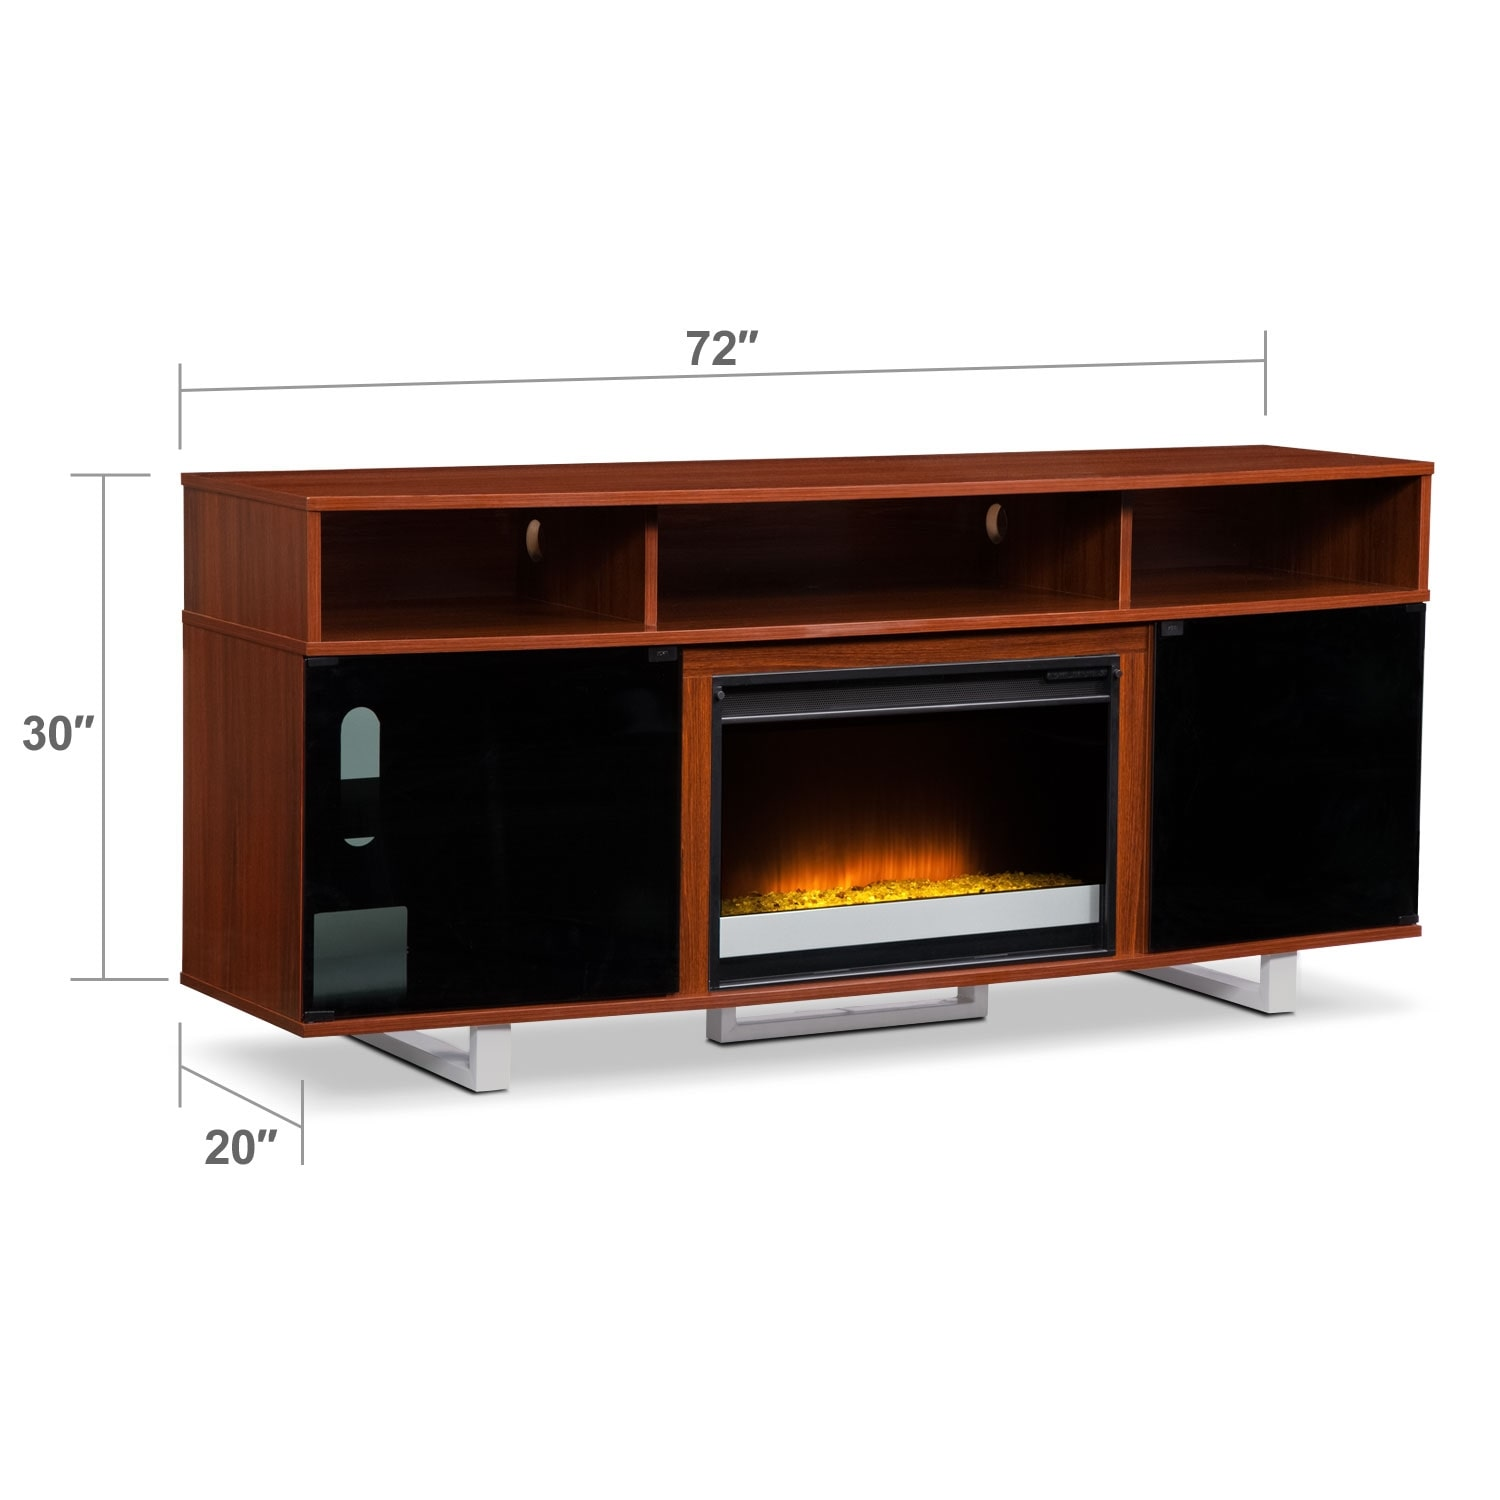 "Entertainment Furniture - Pacer Cherry 72"" Contemporary Fireplace TV Stand"